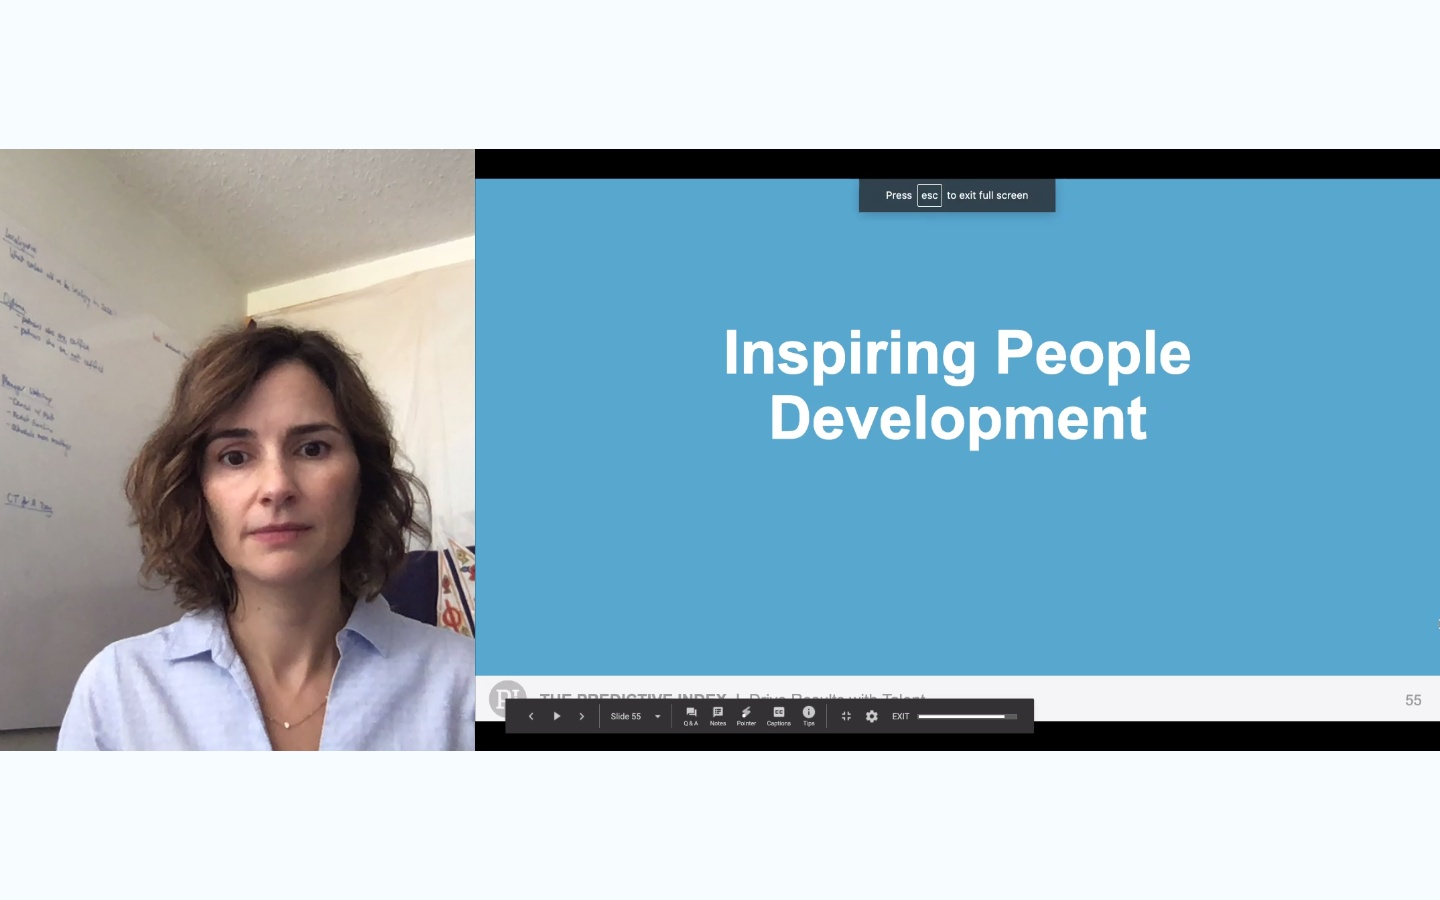 Drive Results with Talent Workshop - 7. Inspiring People Development